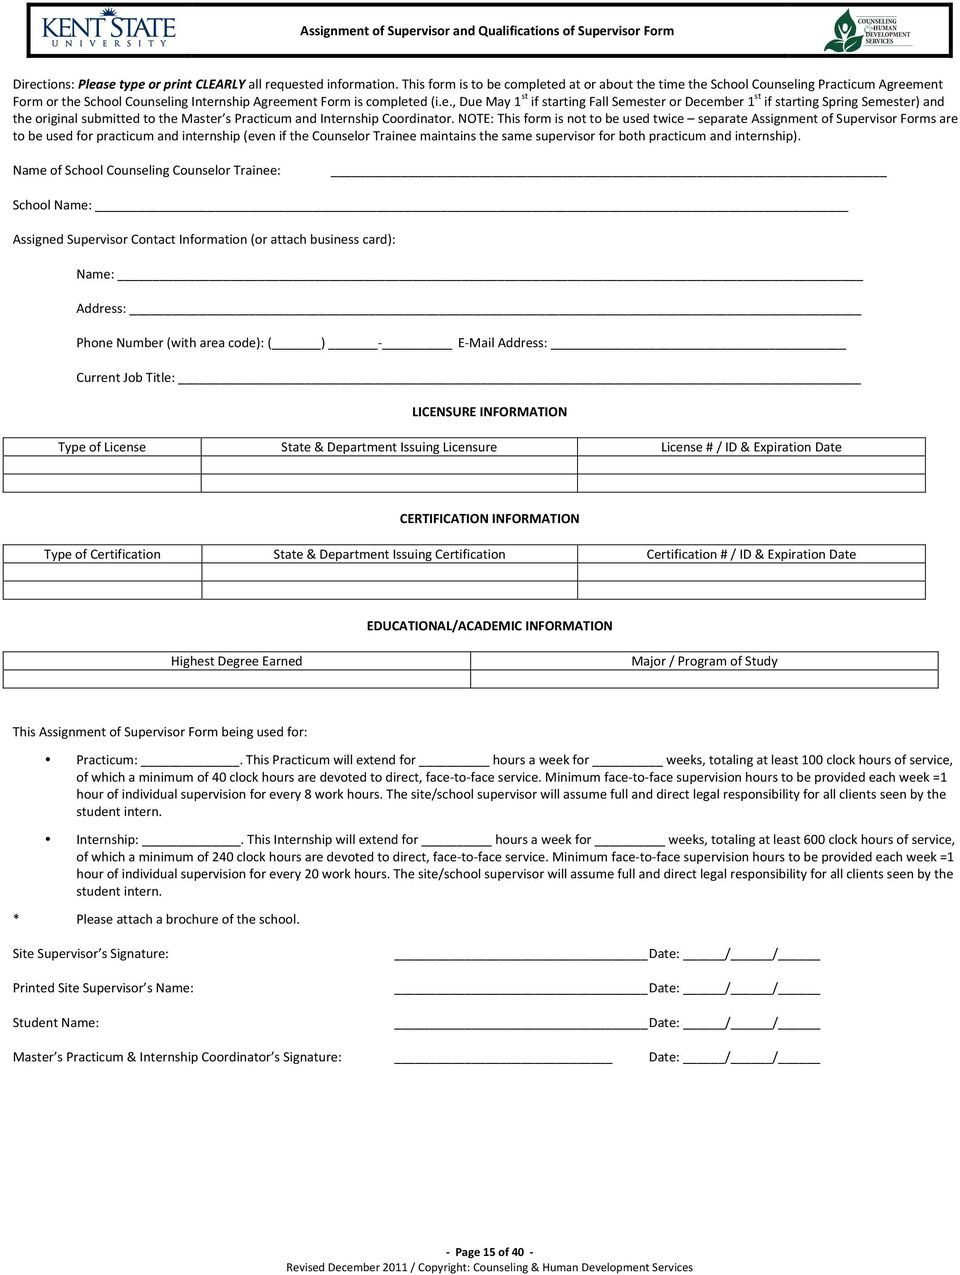 NOTE: This form is not to be used twice separate Assignment of Supervisor Forms are to be used for practicum and internship (even if the Counselor Trainee maintains the same supervisor for both